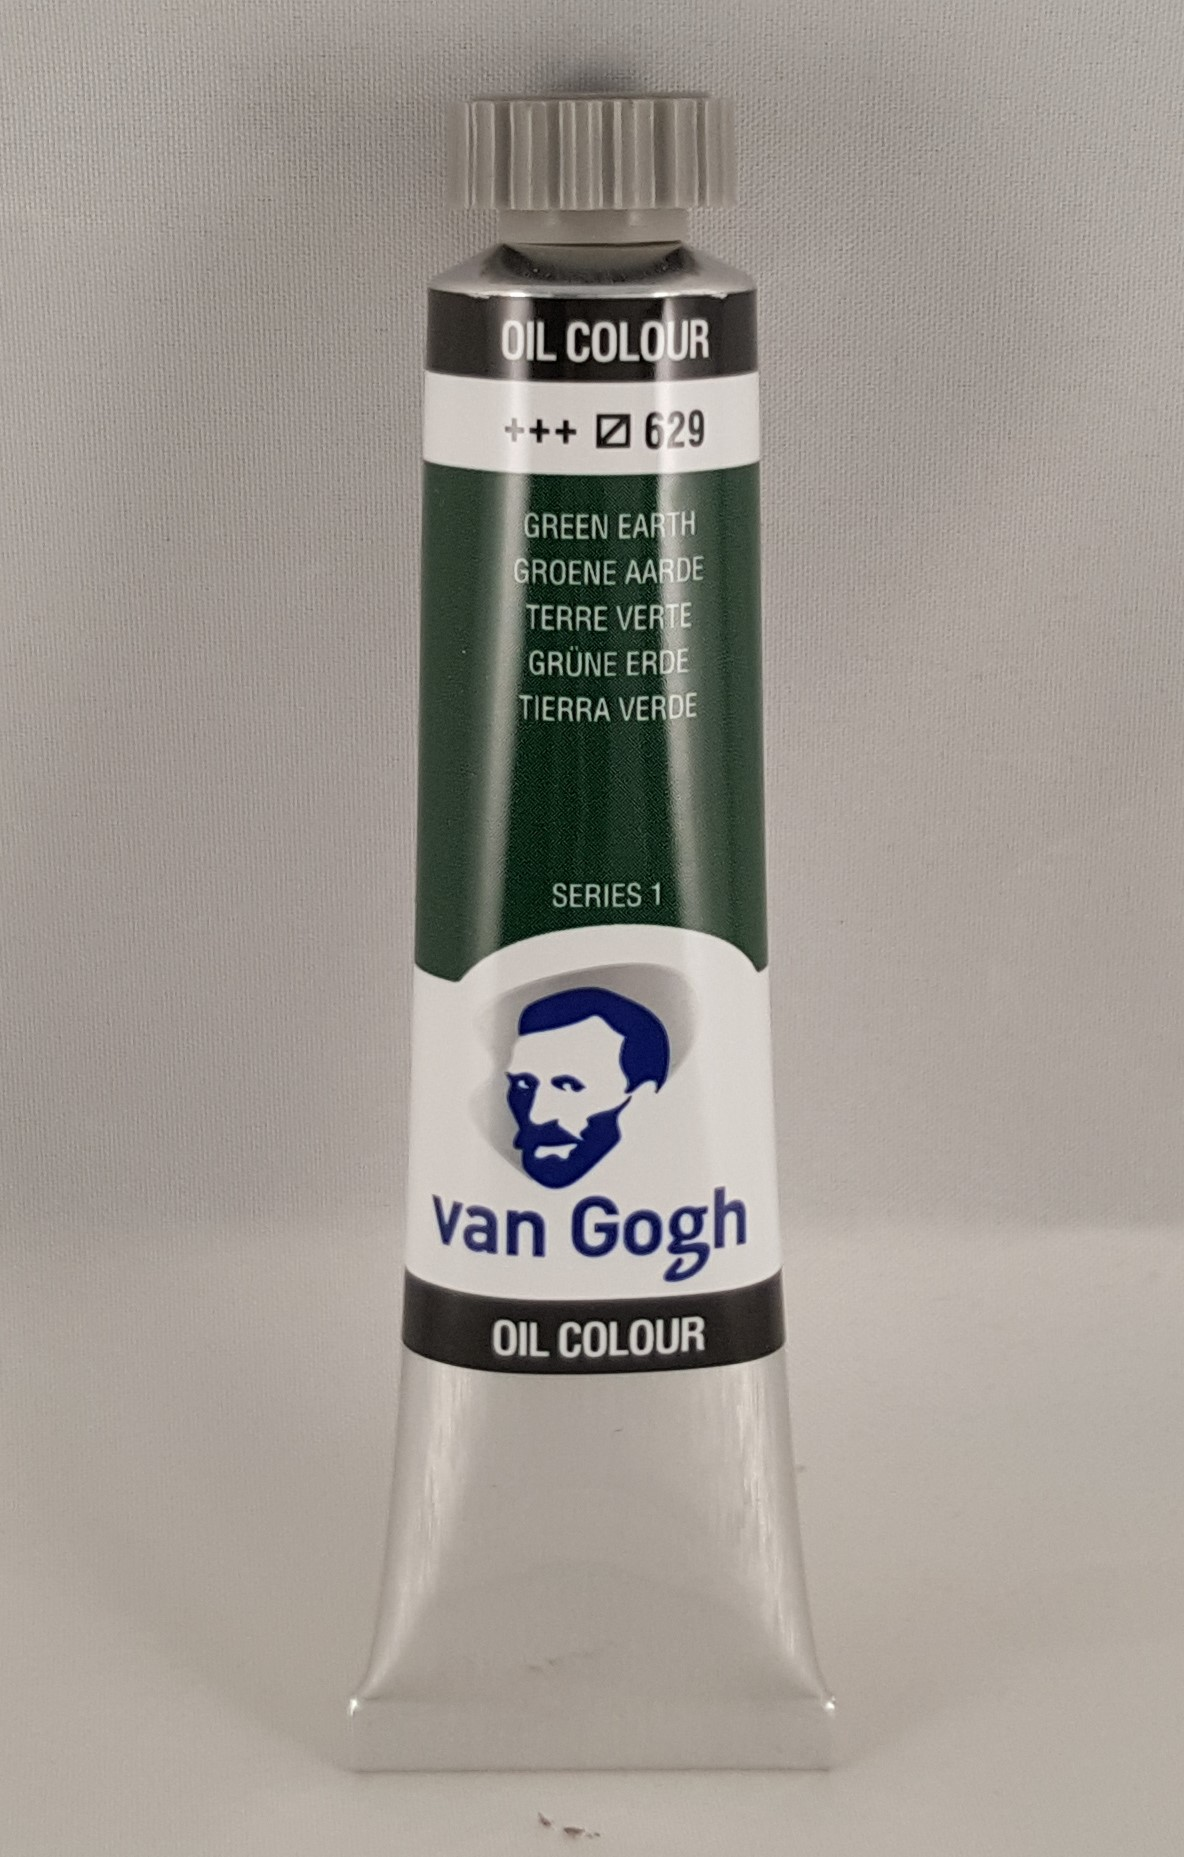 Tinta de óleo Van Gogh green earth